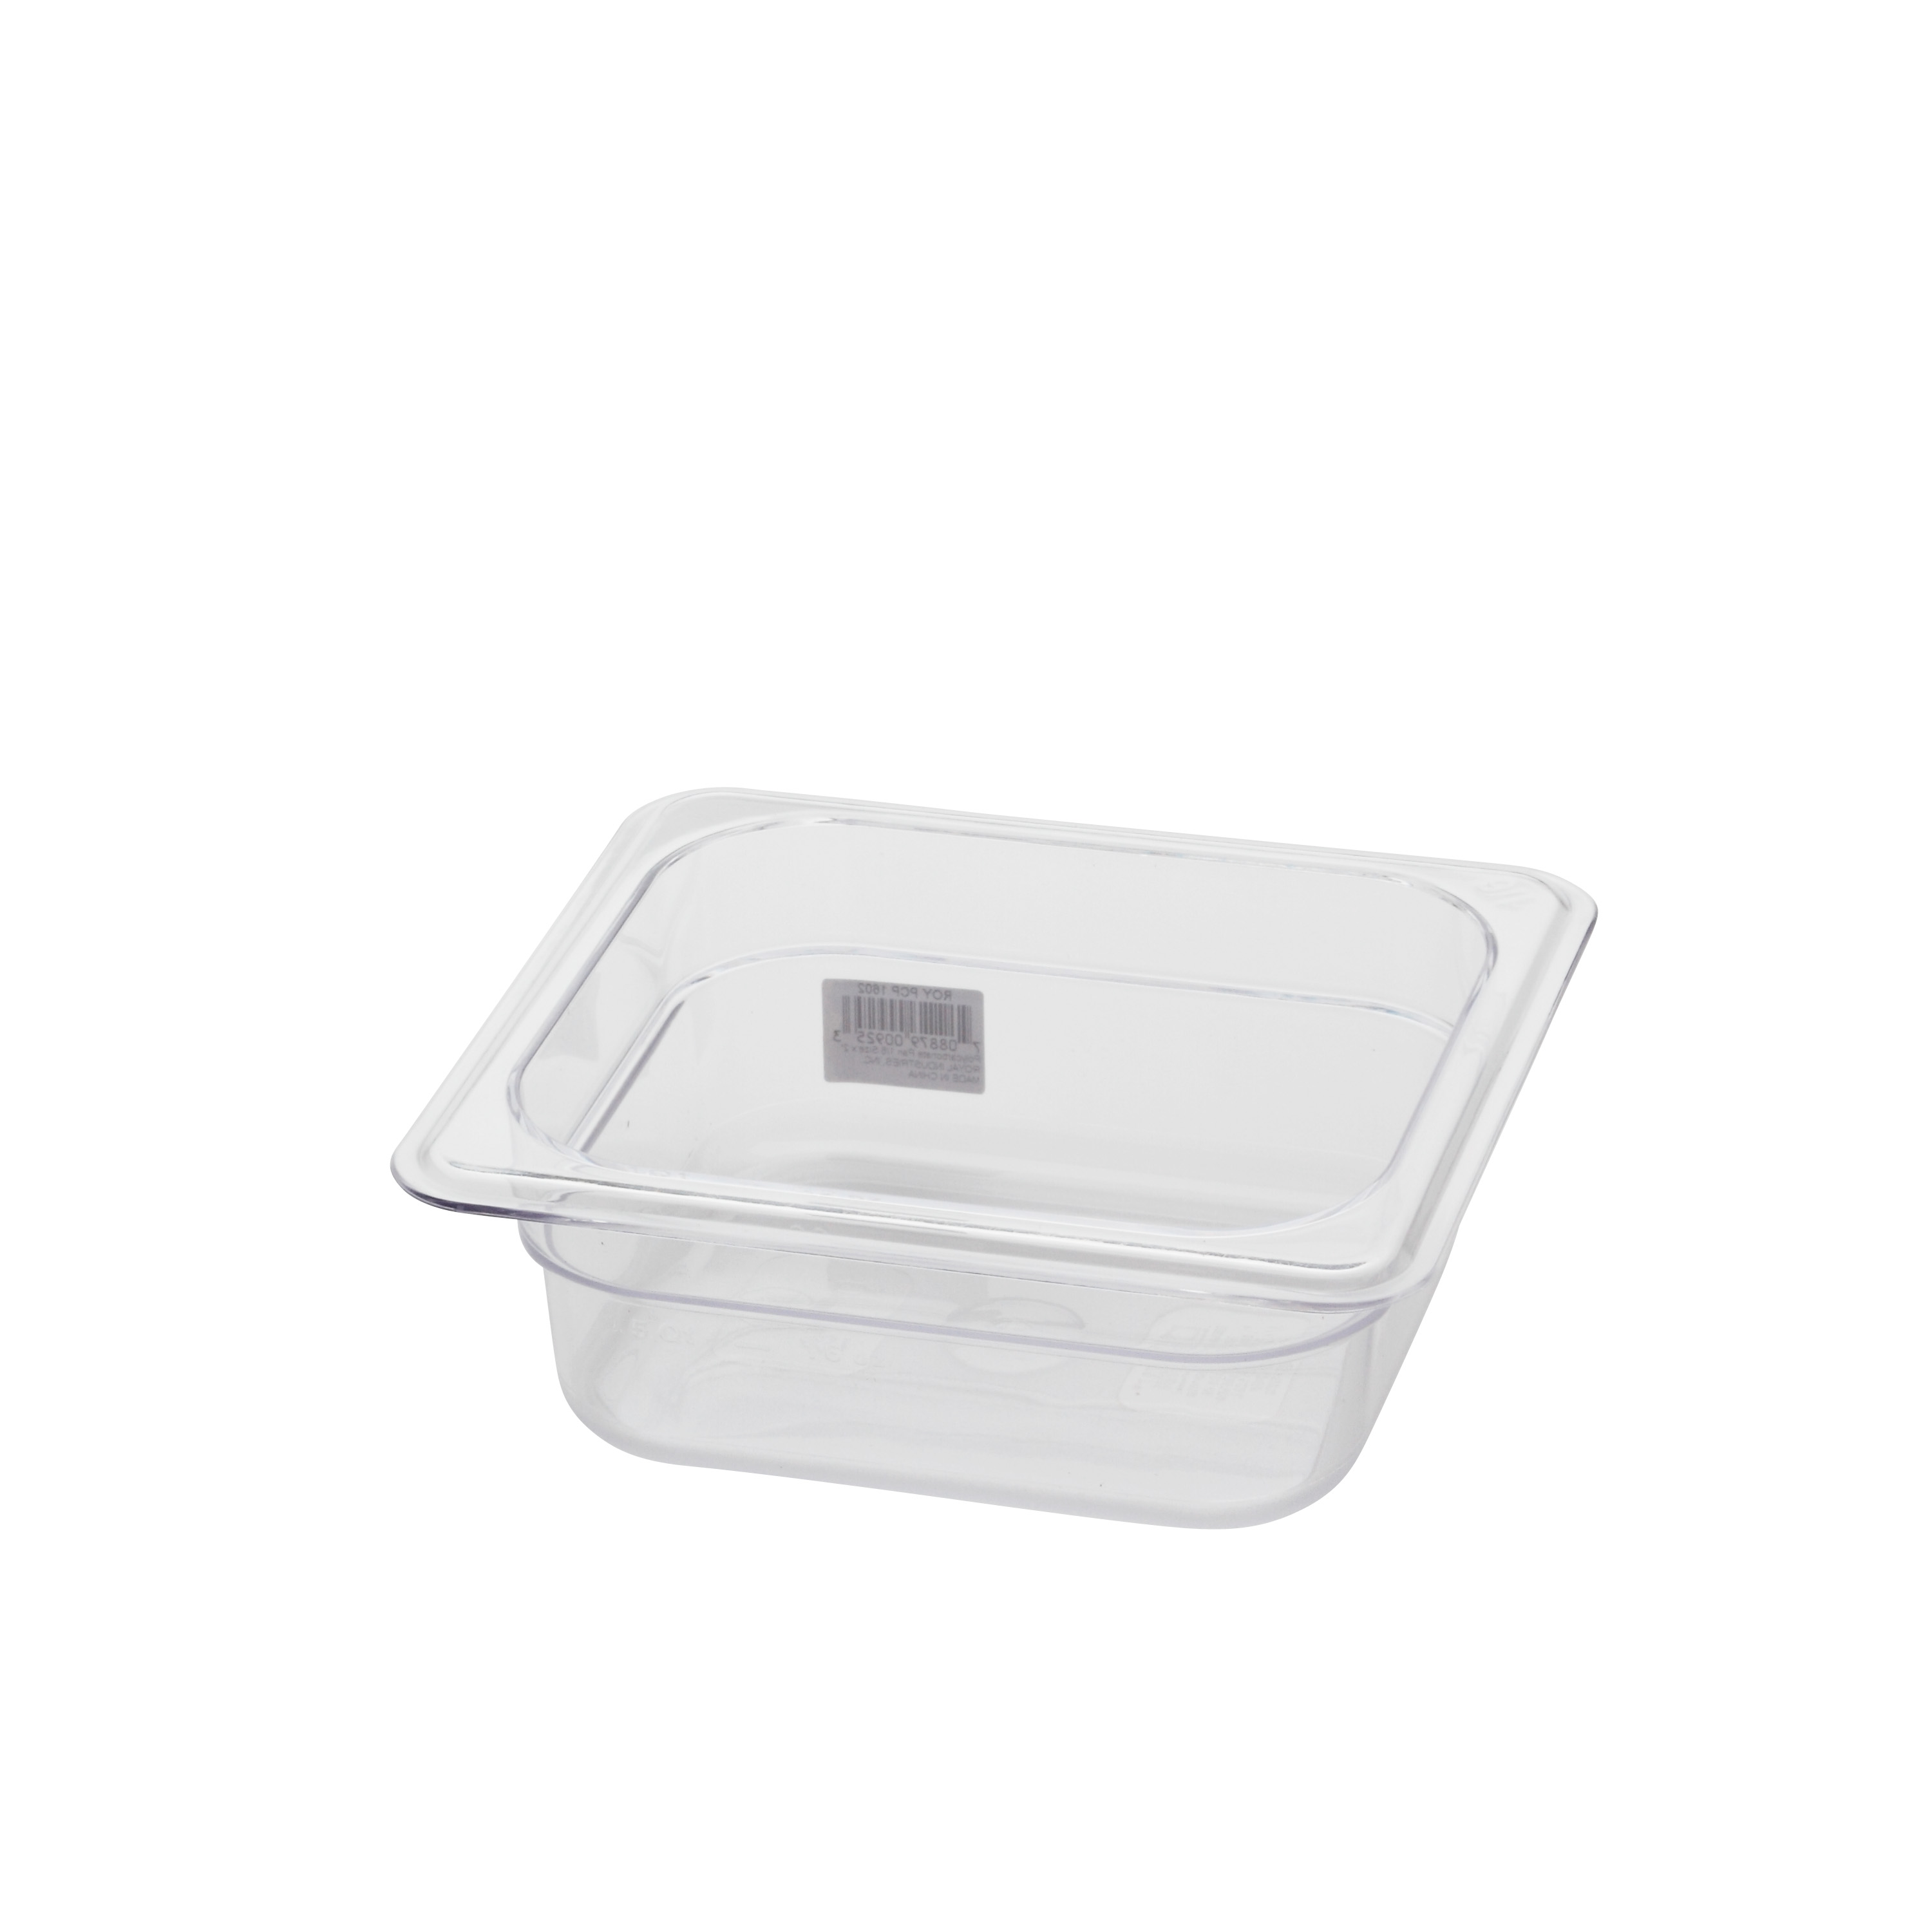 Royal Industries ROY PCP 1602 food pan, plastic